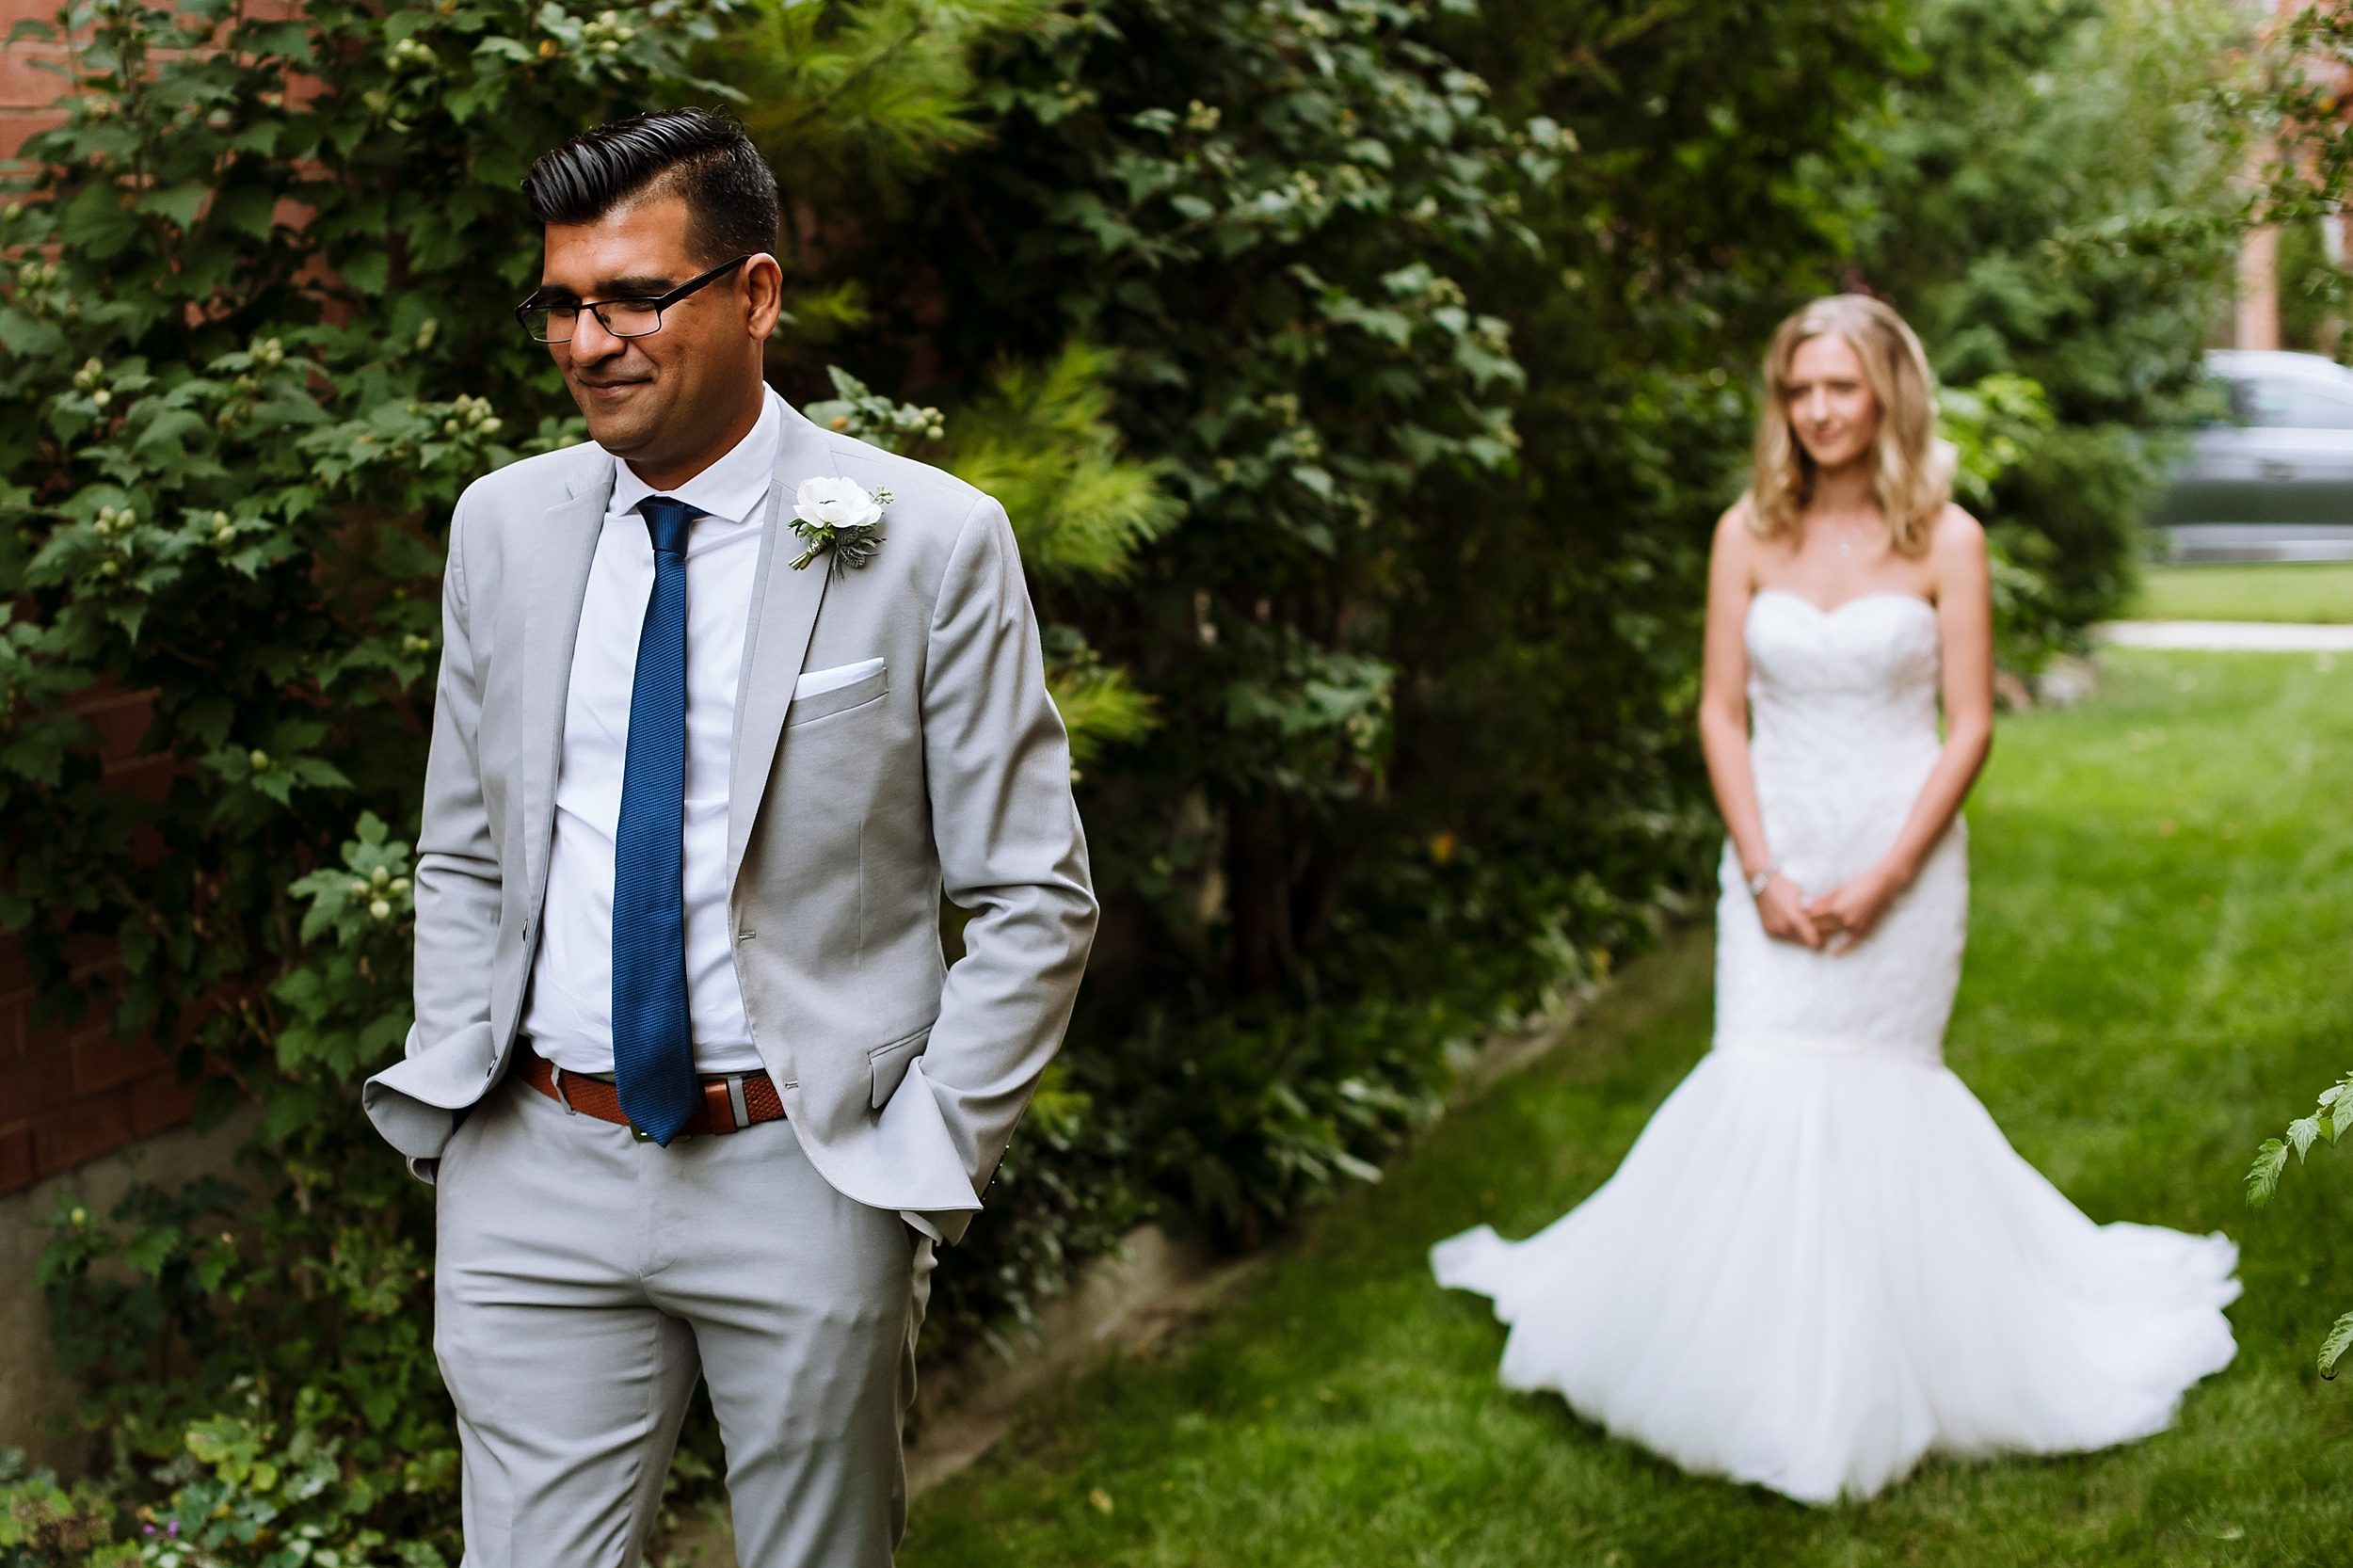 Kariya_Park_Wedding_Shoot_Toronto_Photographer_0020.jpg